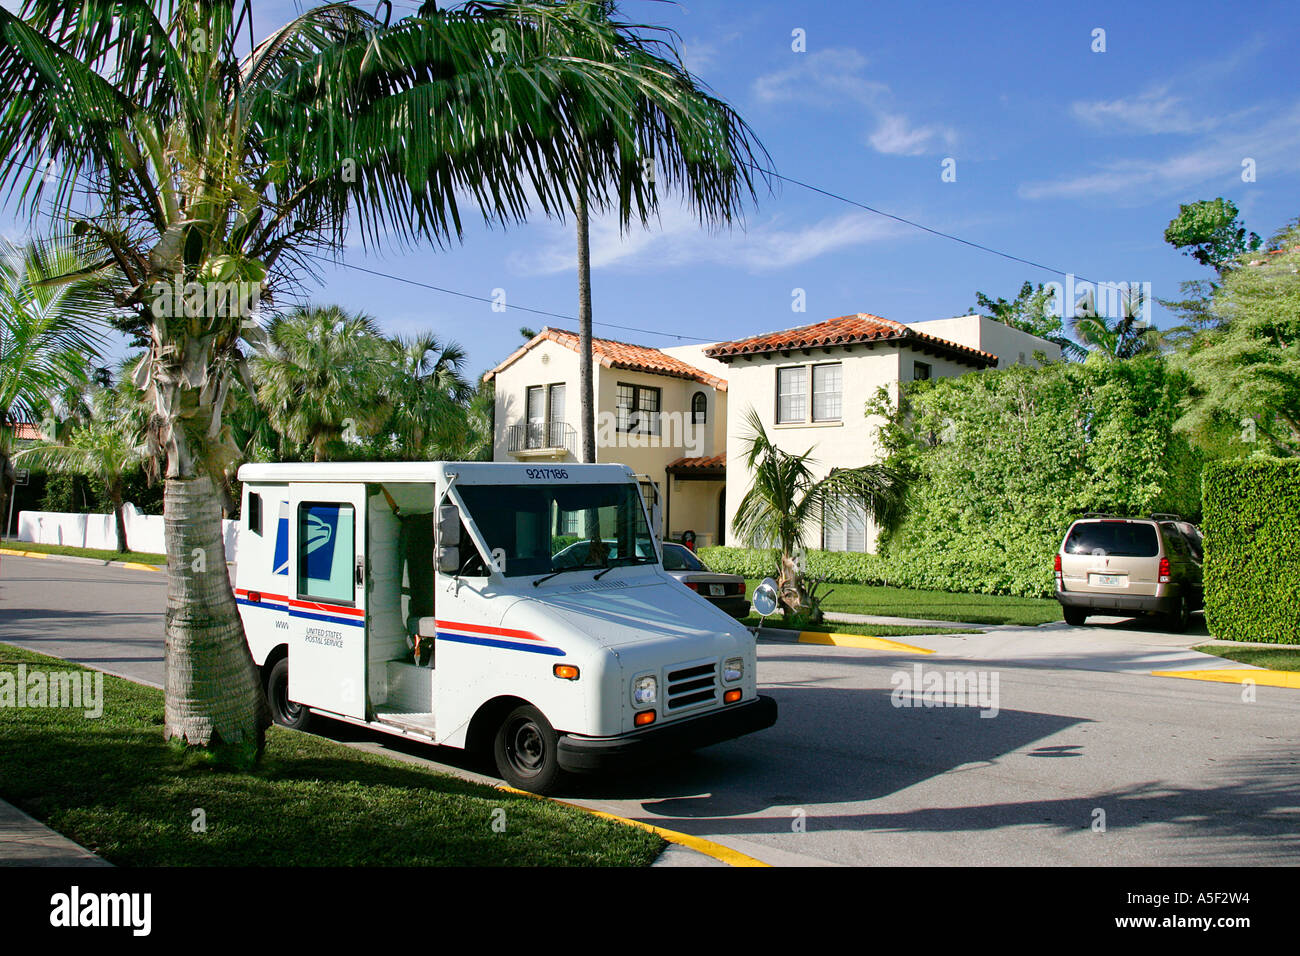 US mail service delivering car vehicle transport Mailbox letterbox postbox postal correspondence shipping delivery red flag - Stock Image